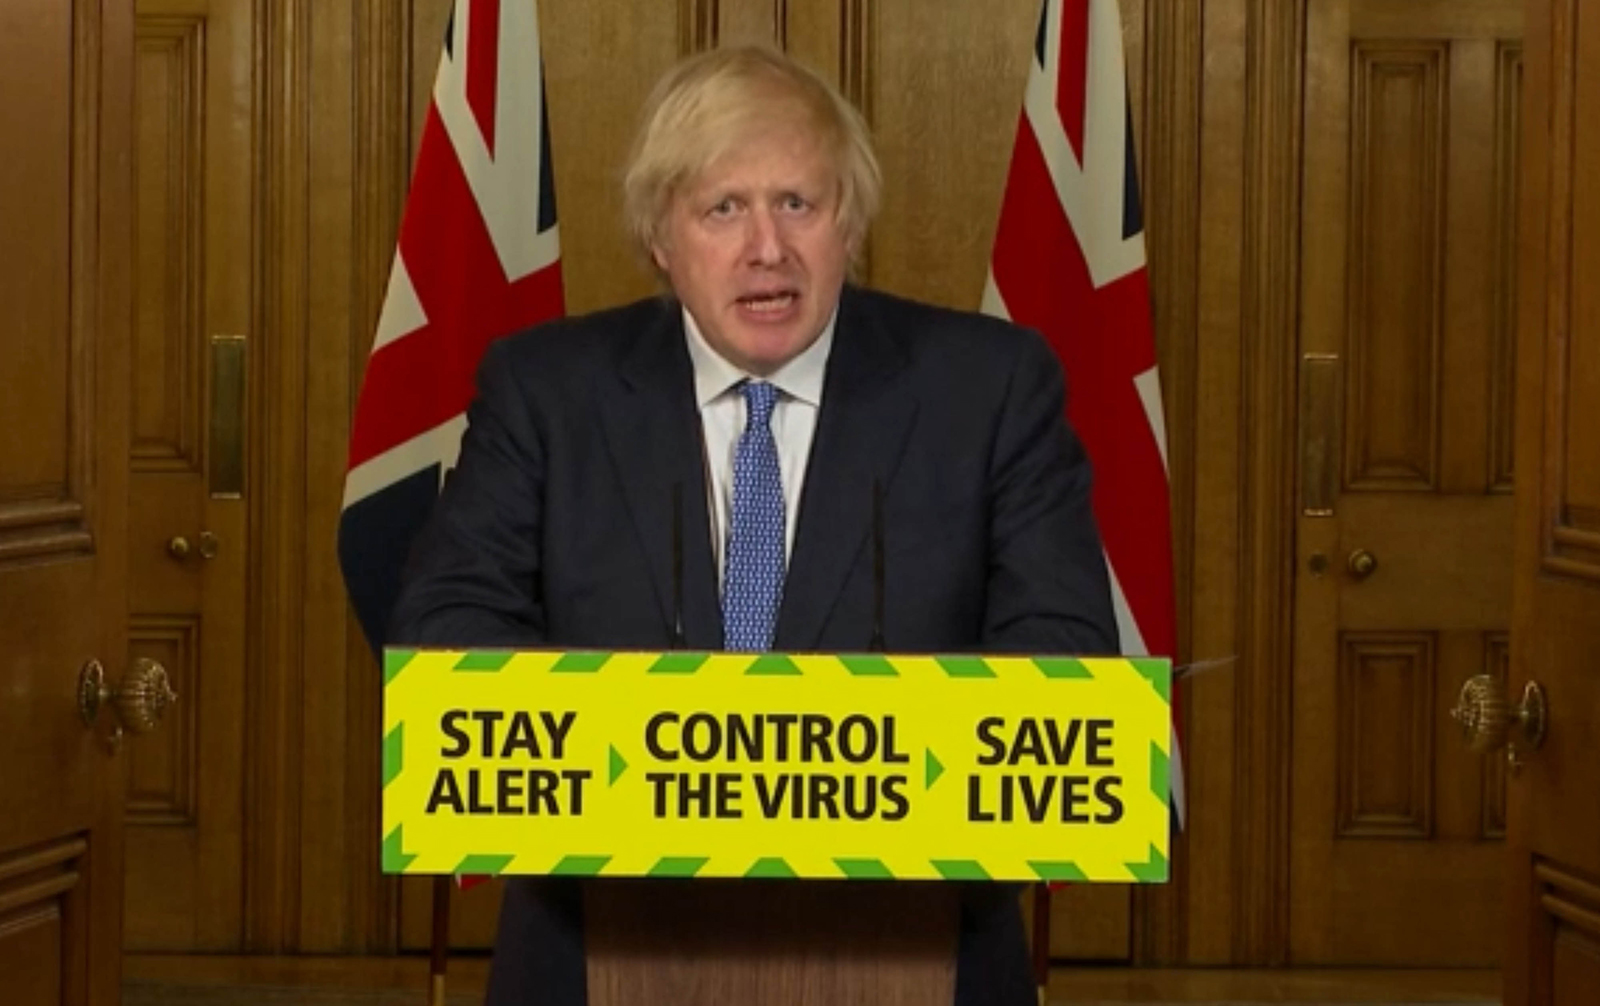 In this screen grab, Prime Minister Boris Johnson speaks during a media briefing in Downing Street, London on July 3.